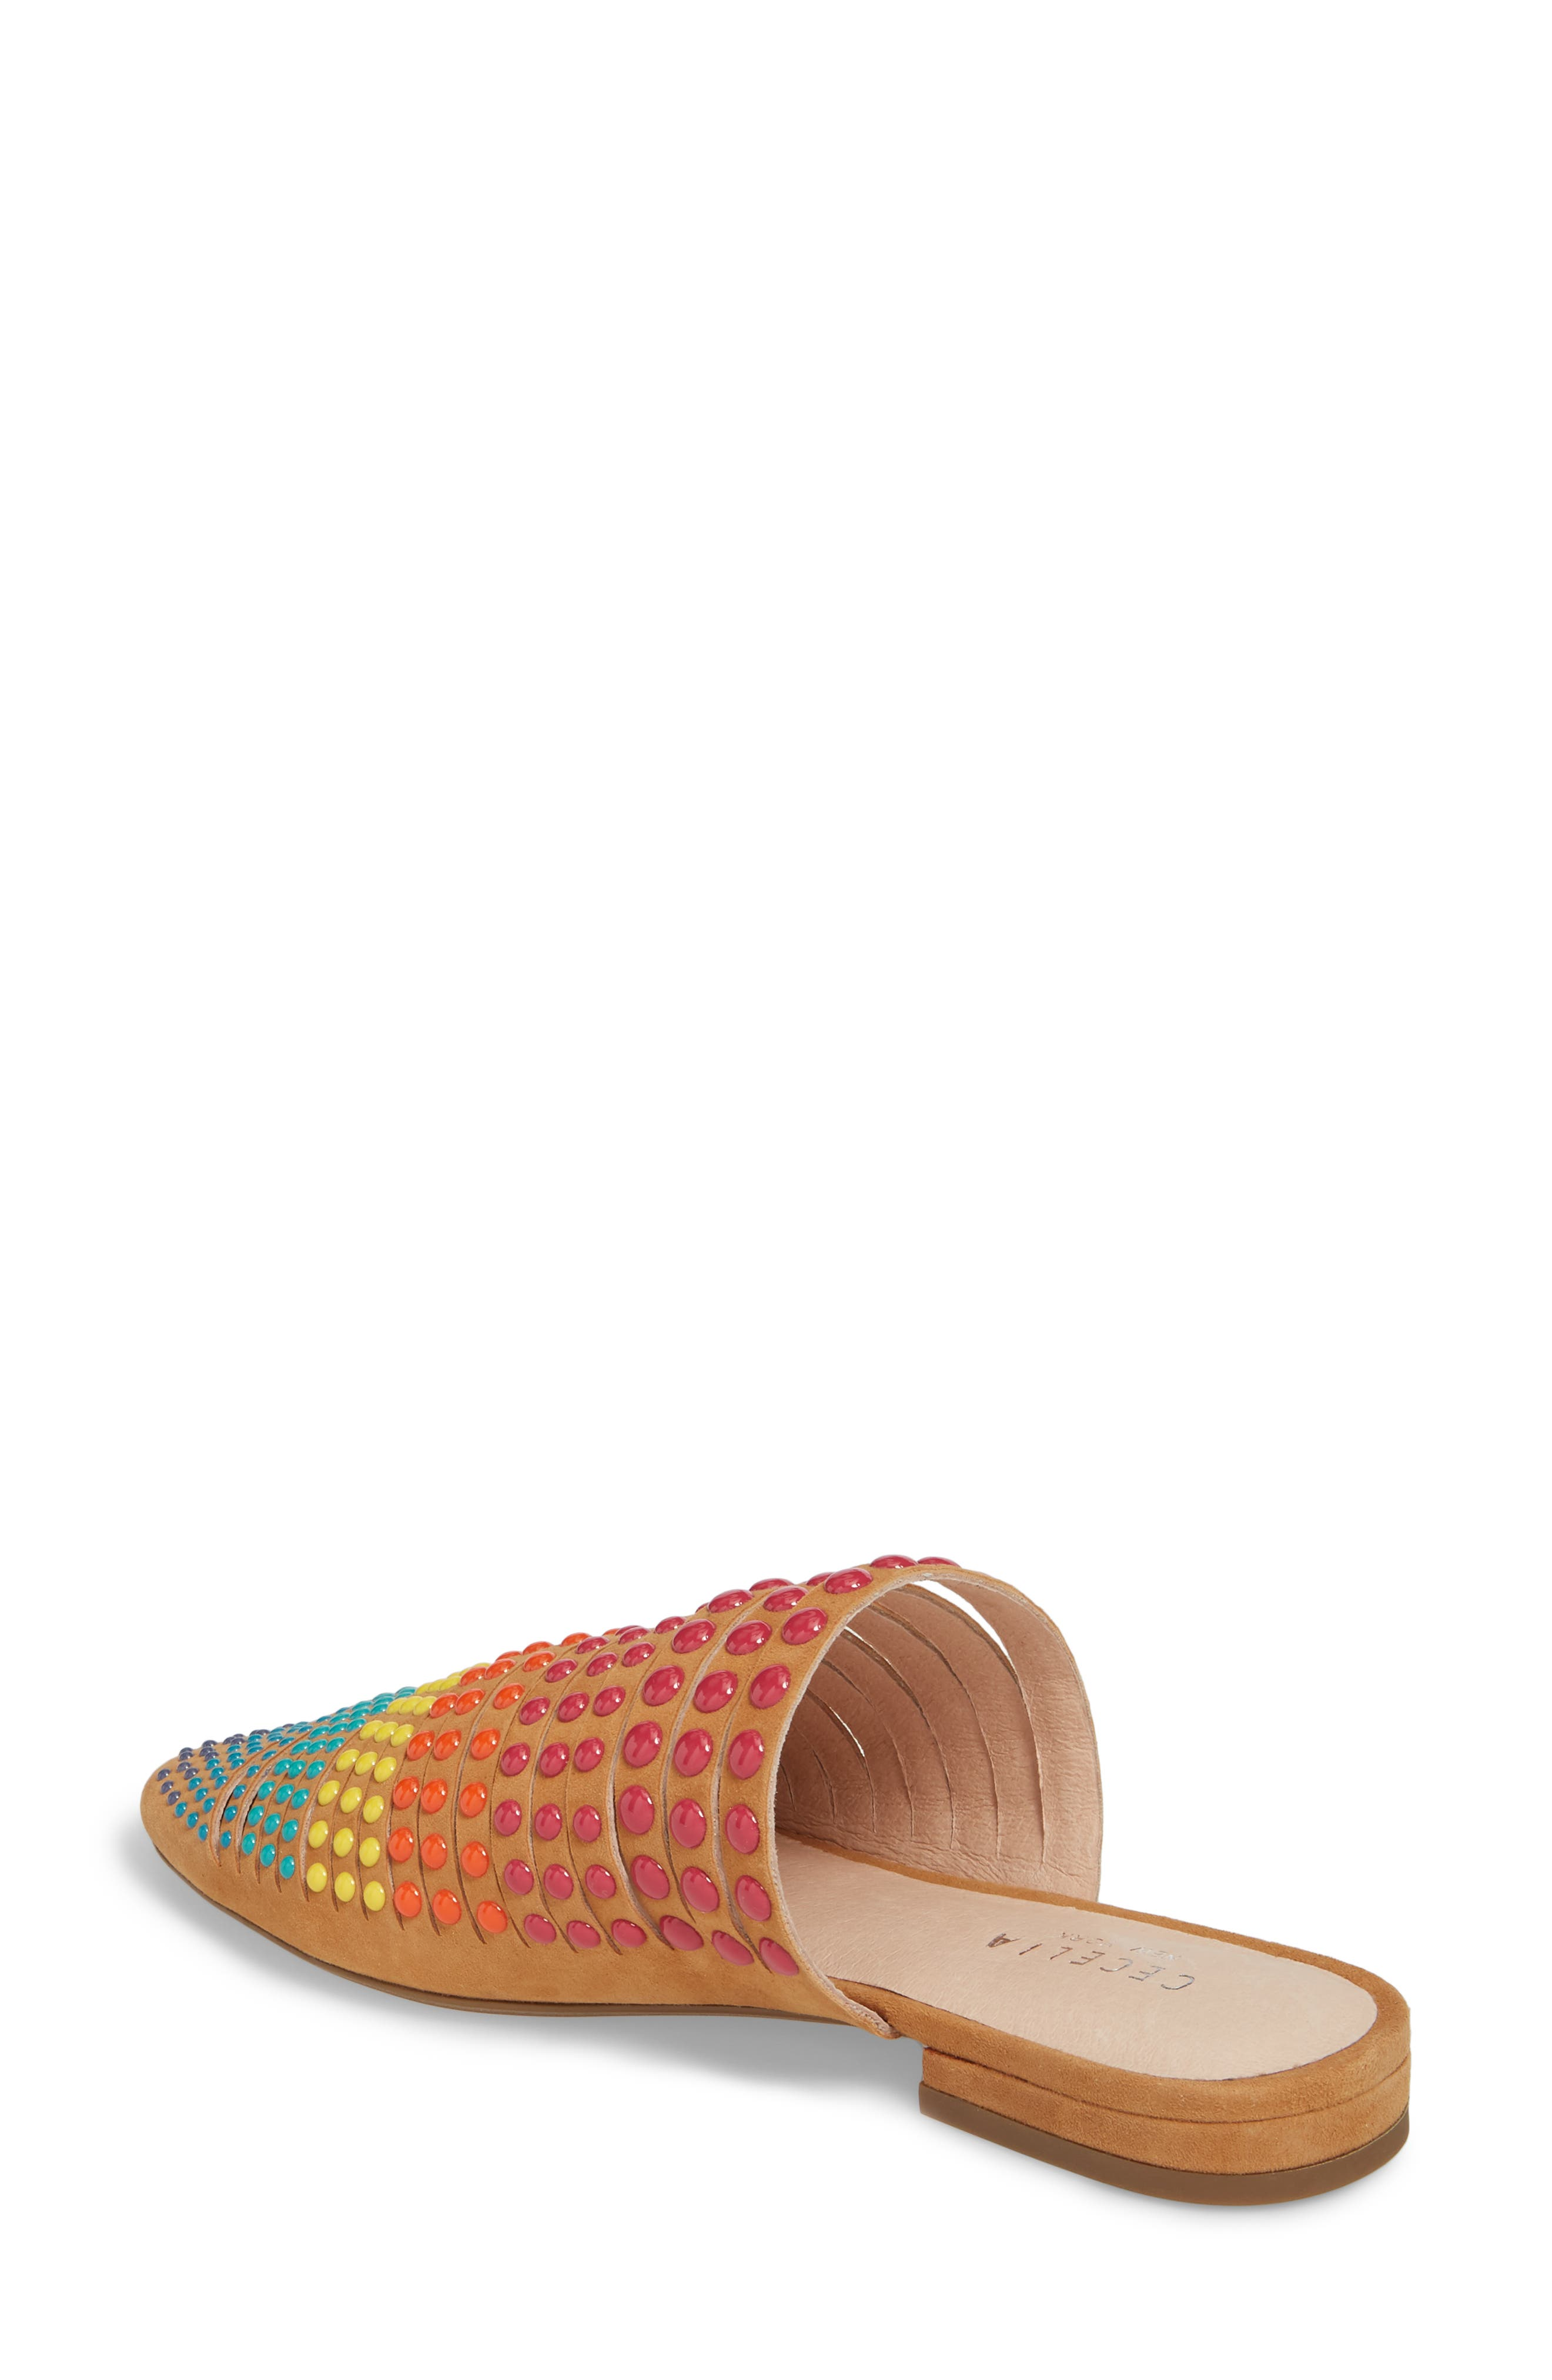 Potz Embellished Slide,                             Alternate thumbnail 2, color,                             Tan Print Suede